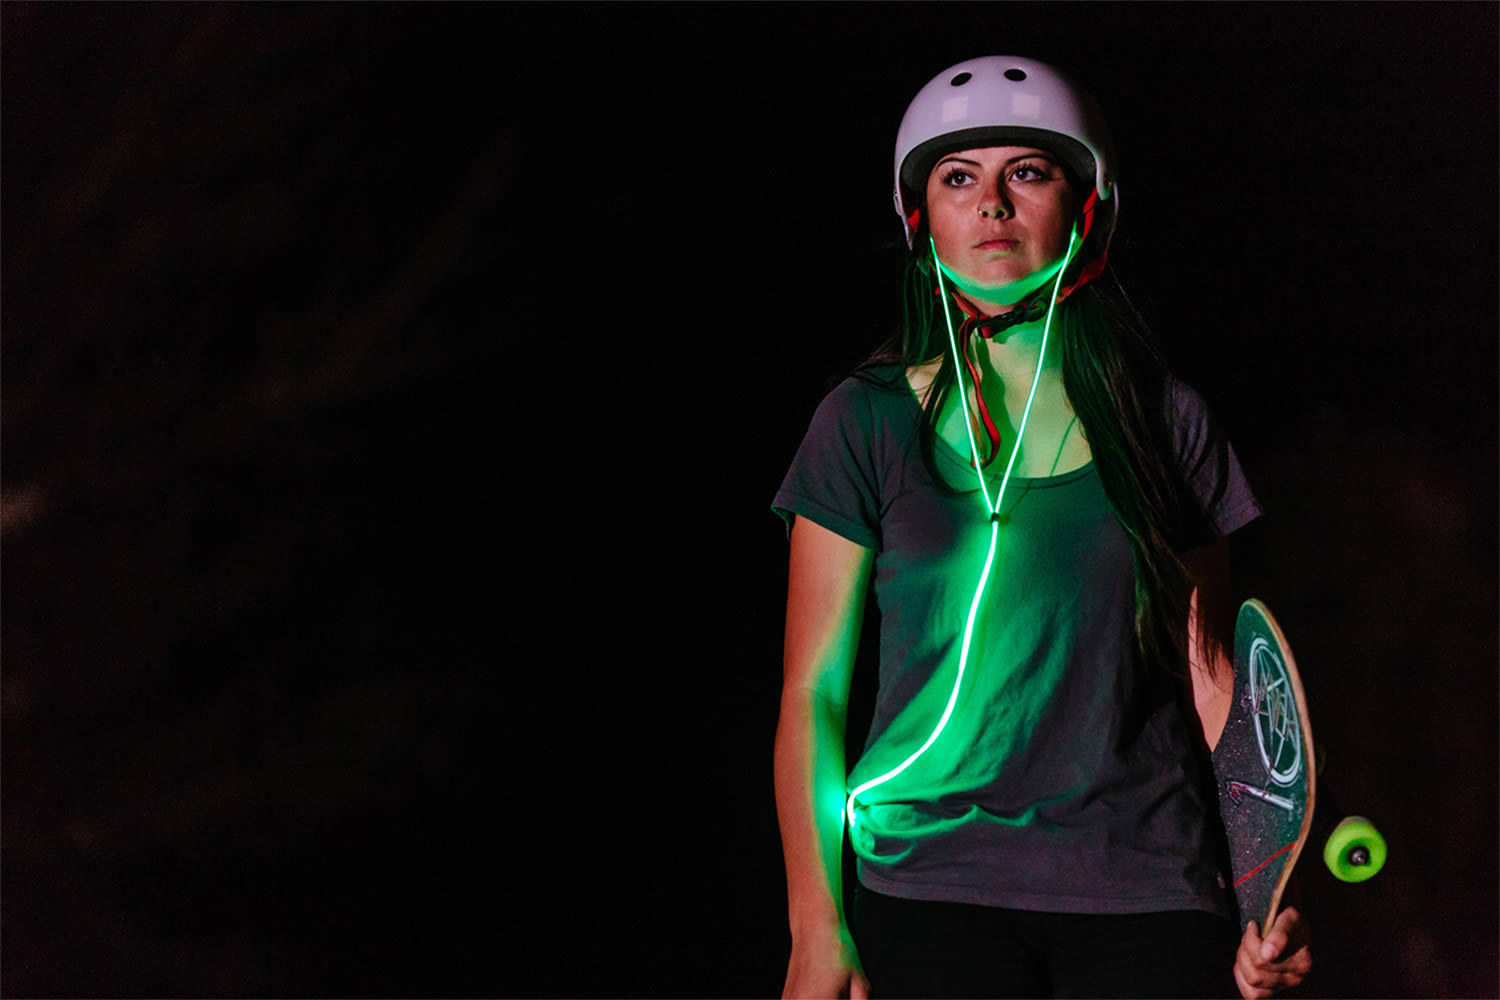 glow laser light headphones, skateboard girl